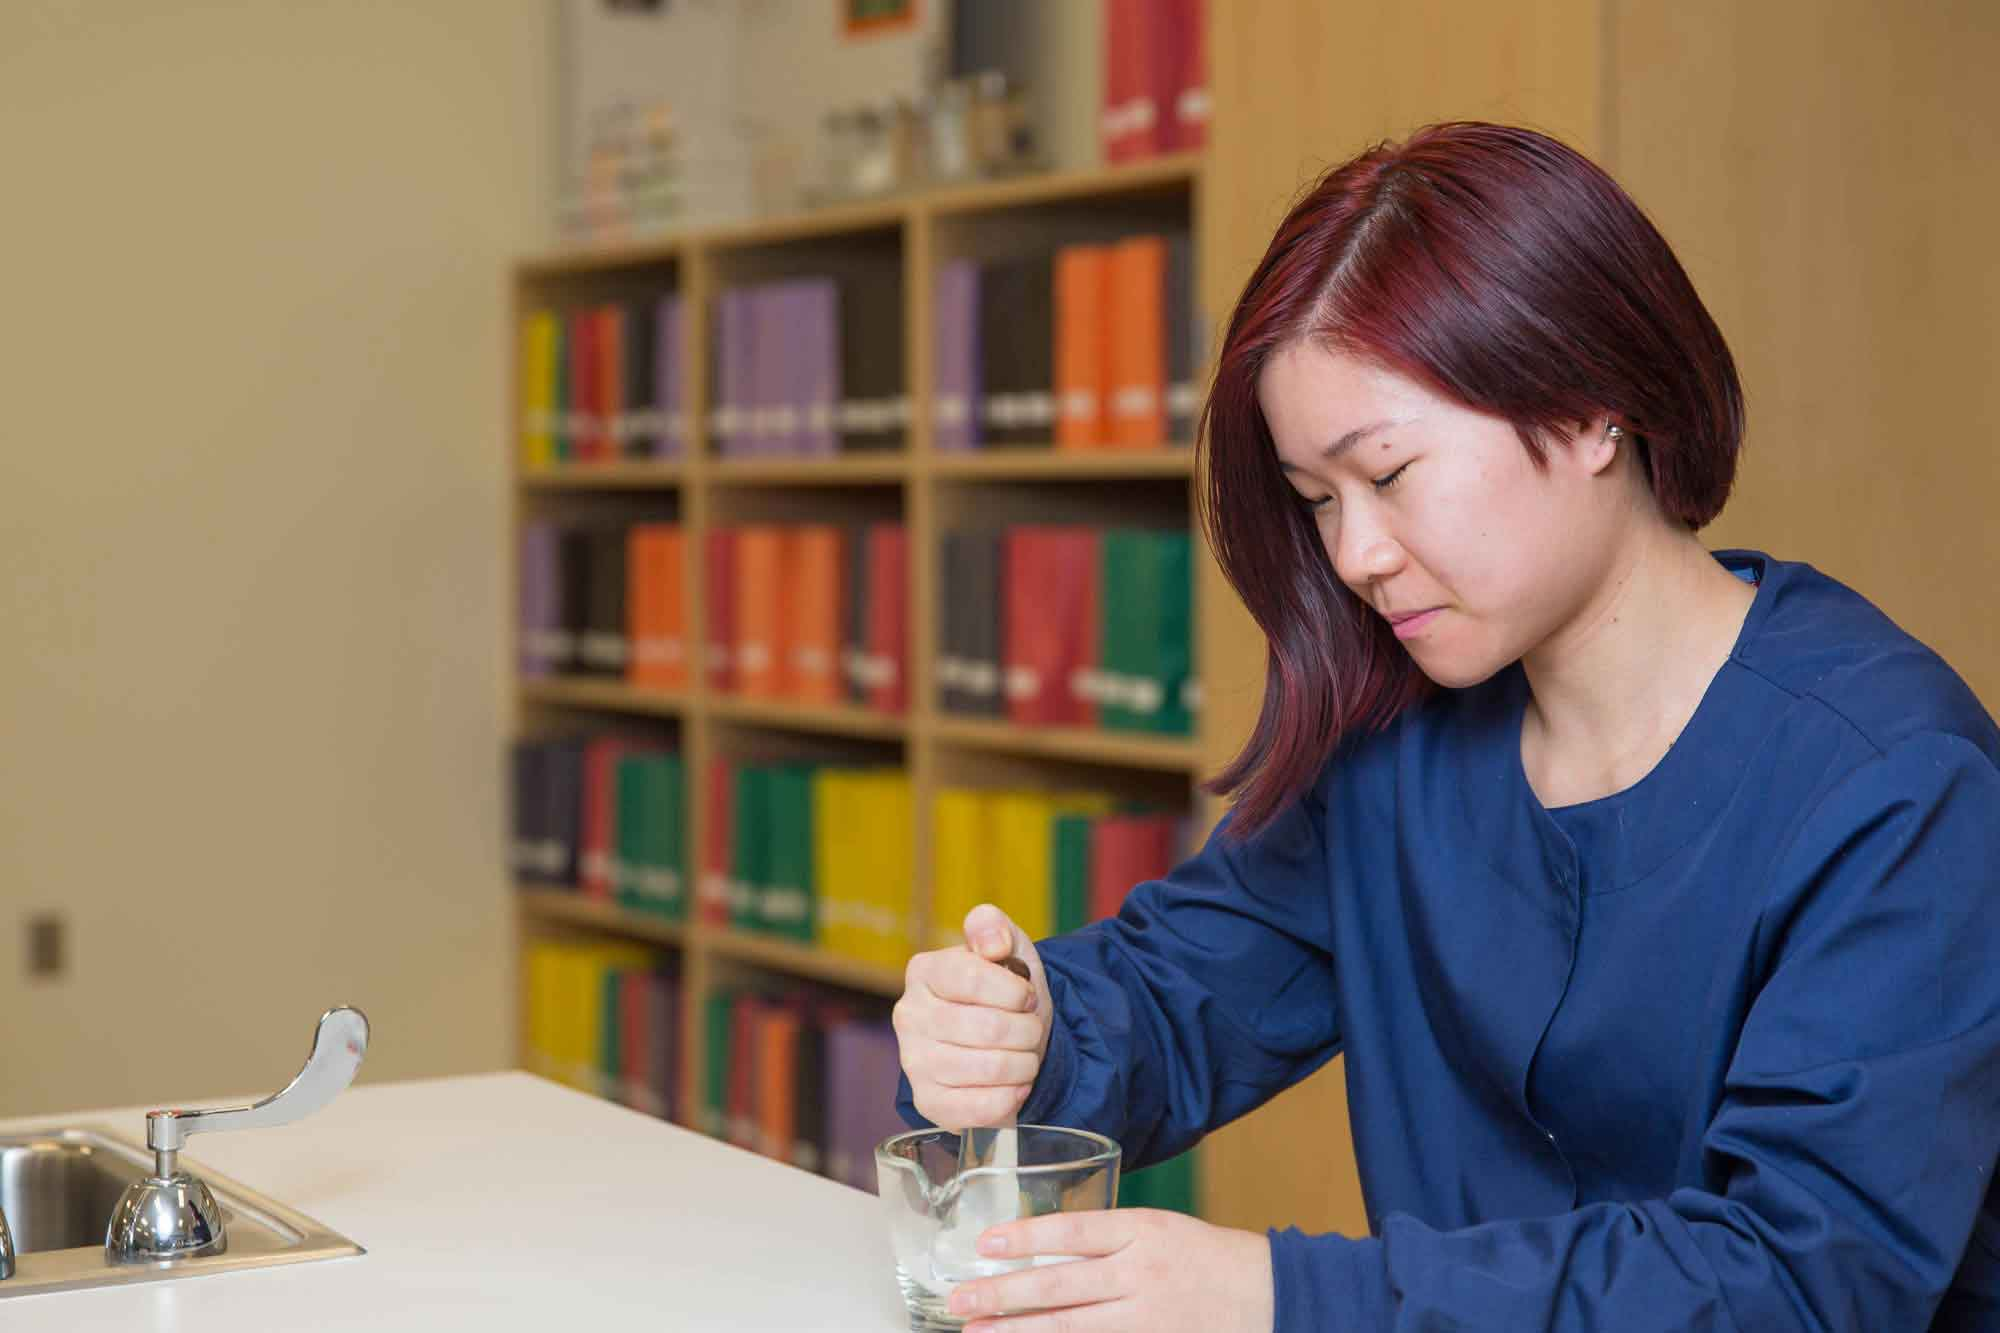 A student uses a mortar and pestle